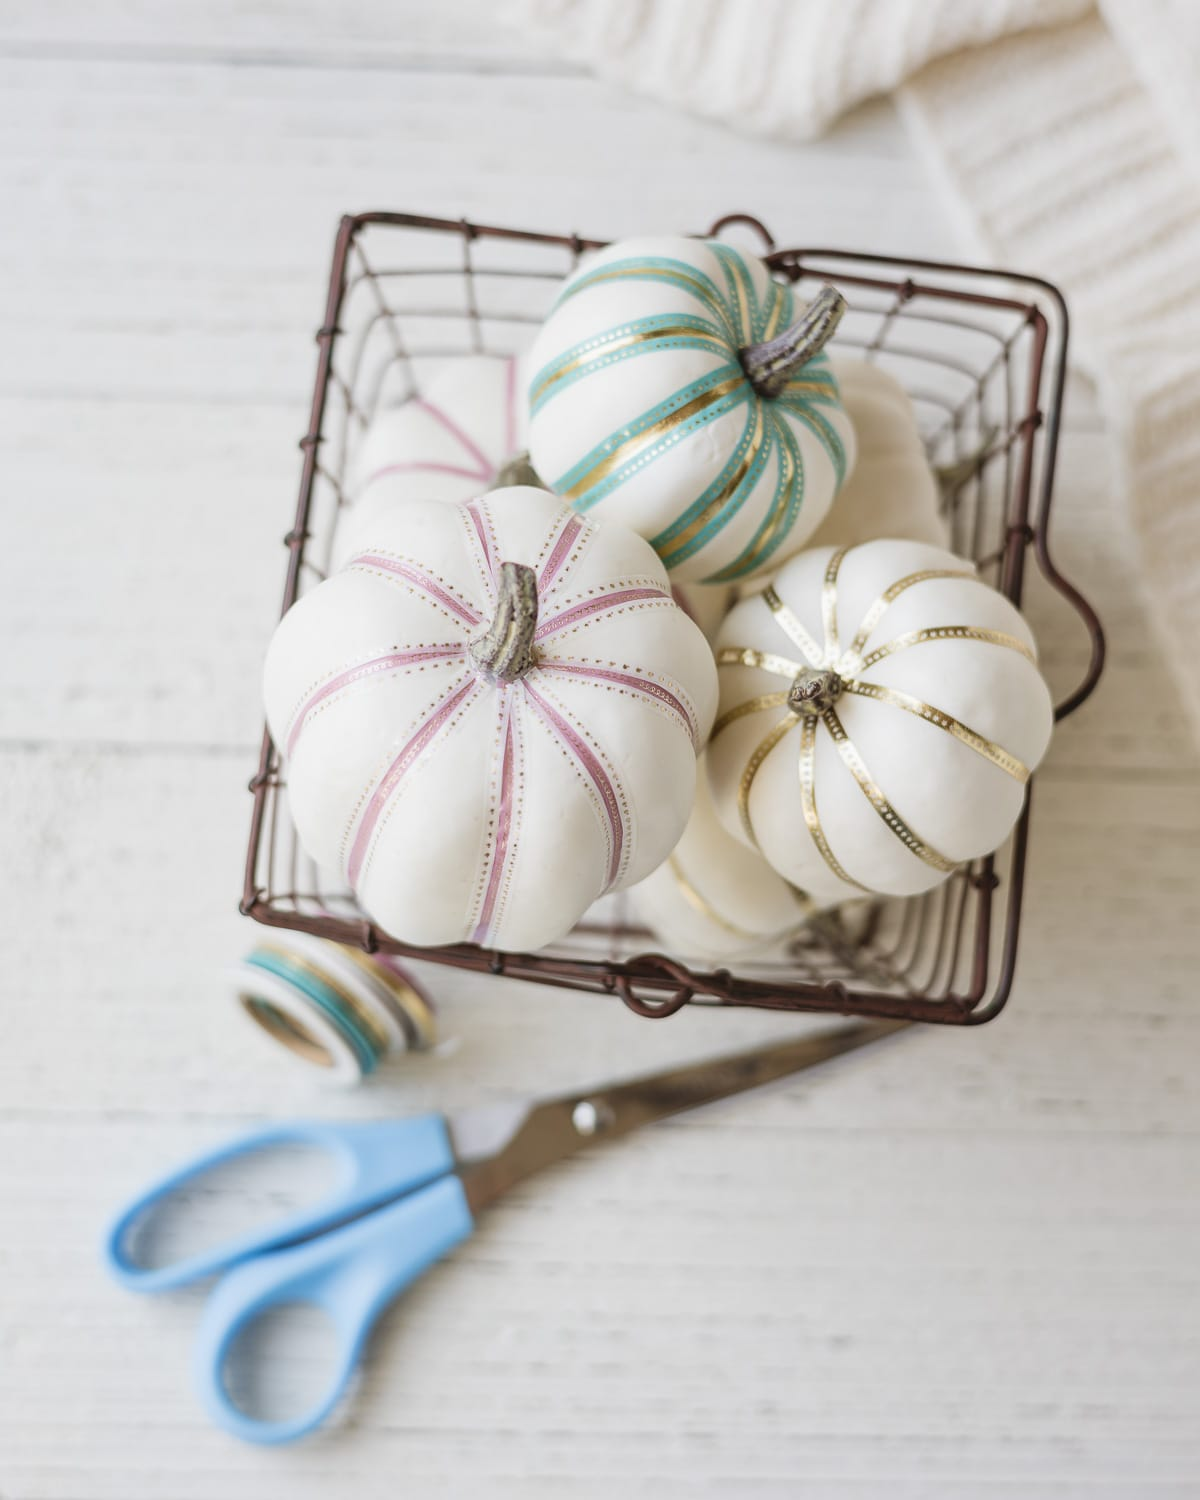 White foam pumpkins decorated with colorful washi tape and arranged in a metal basket.